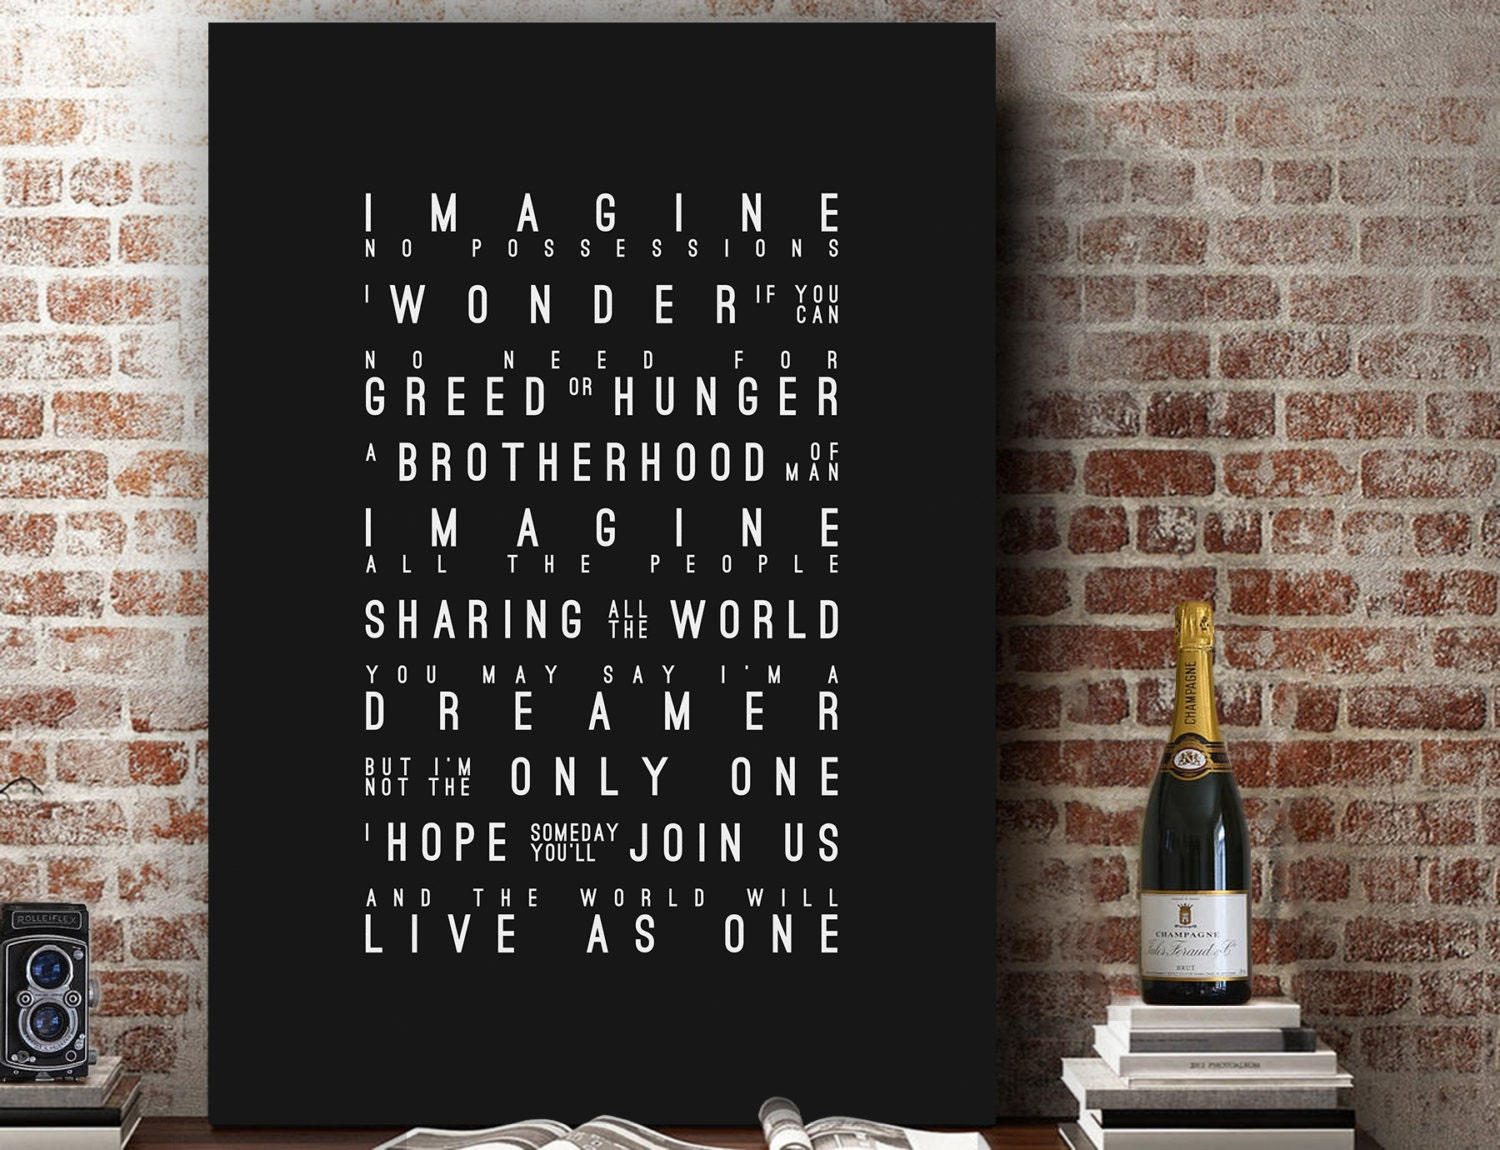 John Lennon Imagine Inspired Lyrics Music Wall Art Song Lyrics